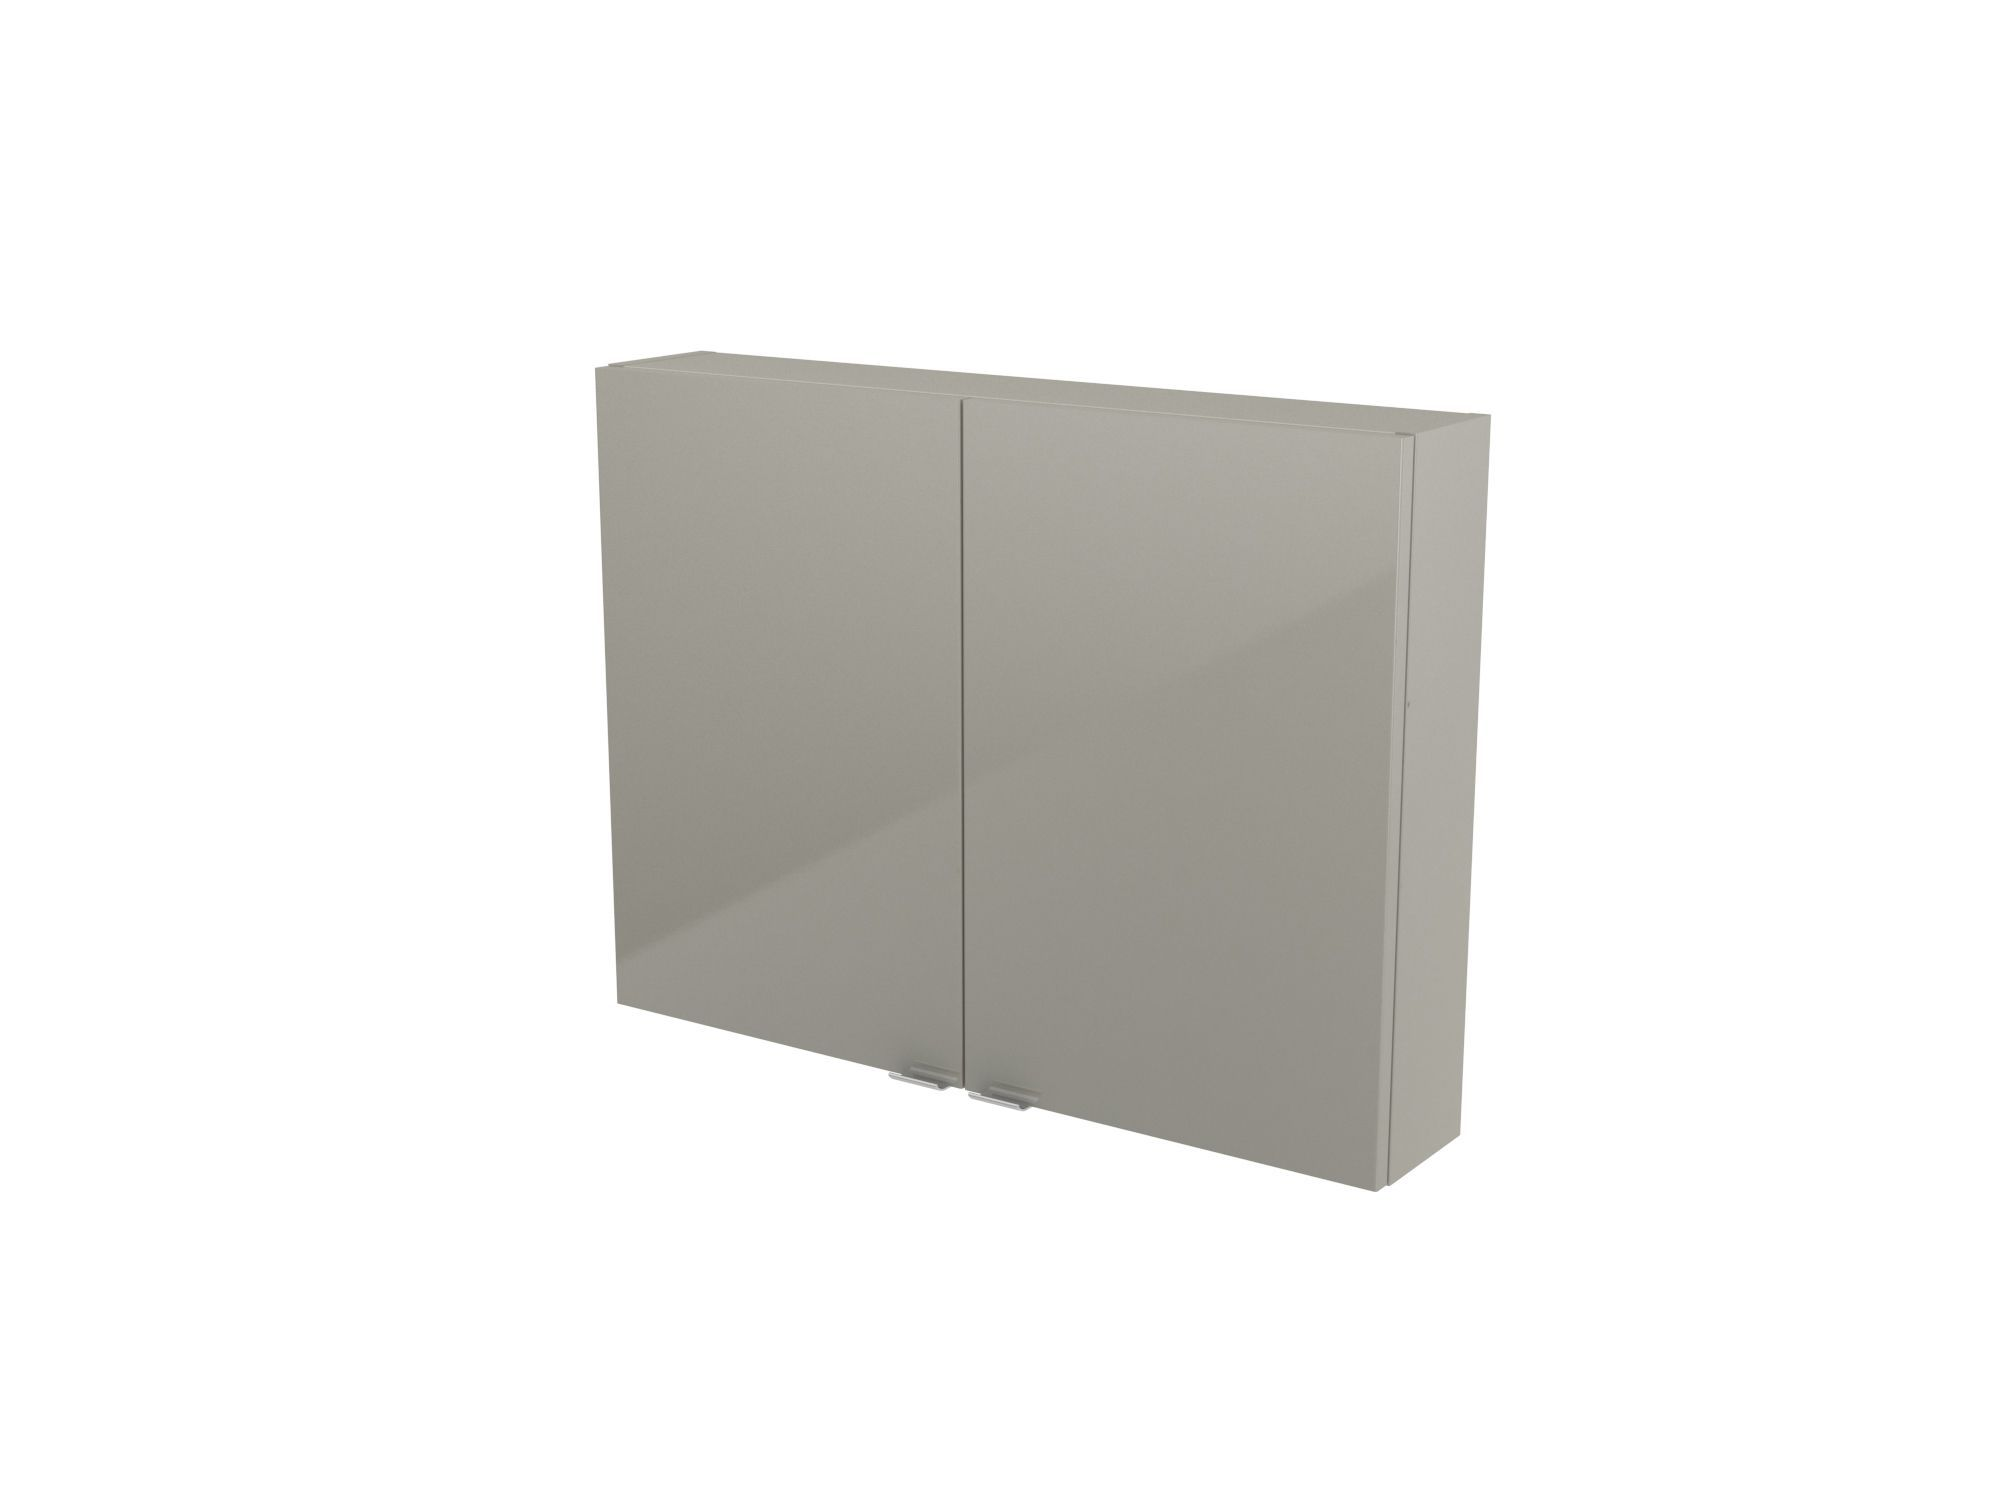 Cooke & Lewis Imandra Gloss Taupe Short Wall Cabinet, (w)800mm